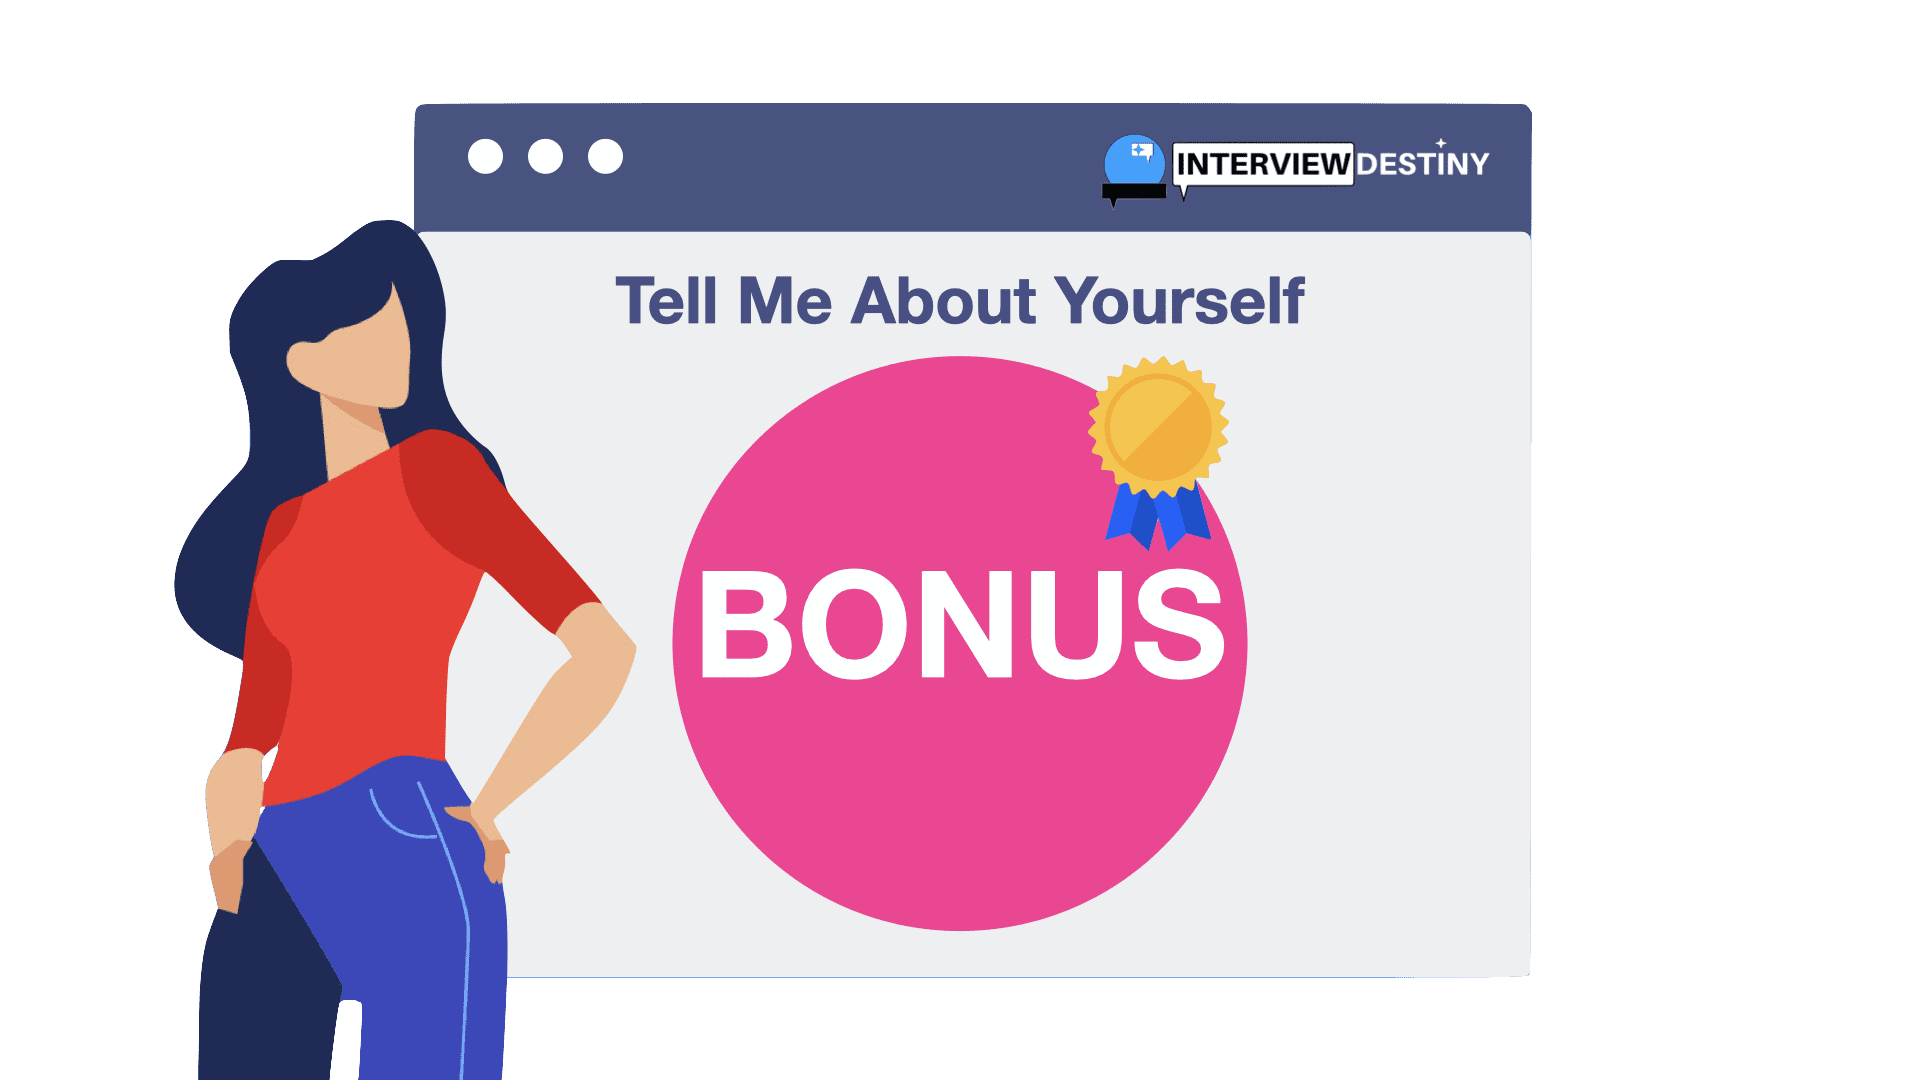 Tell me about yourself bonus answer creator